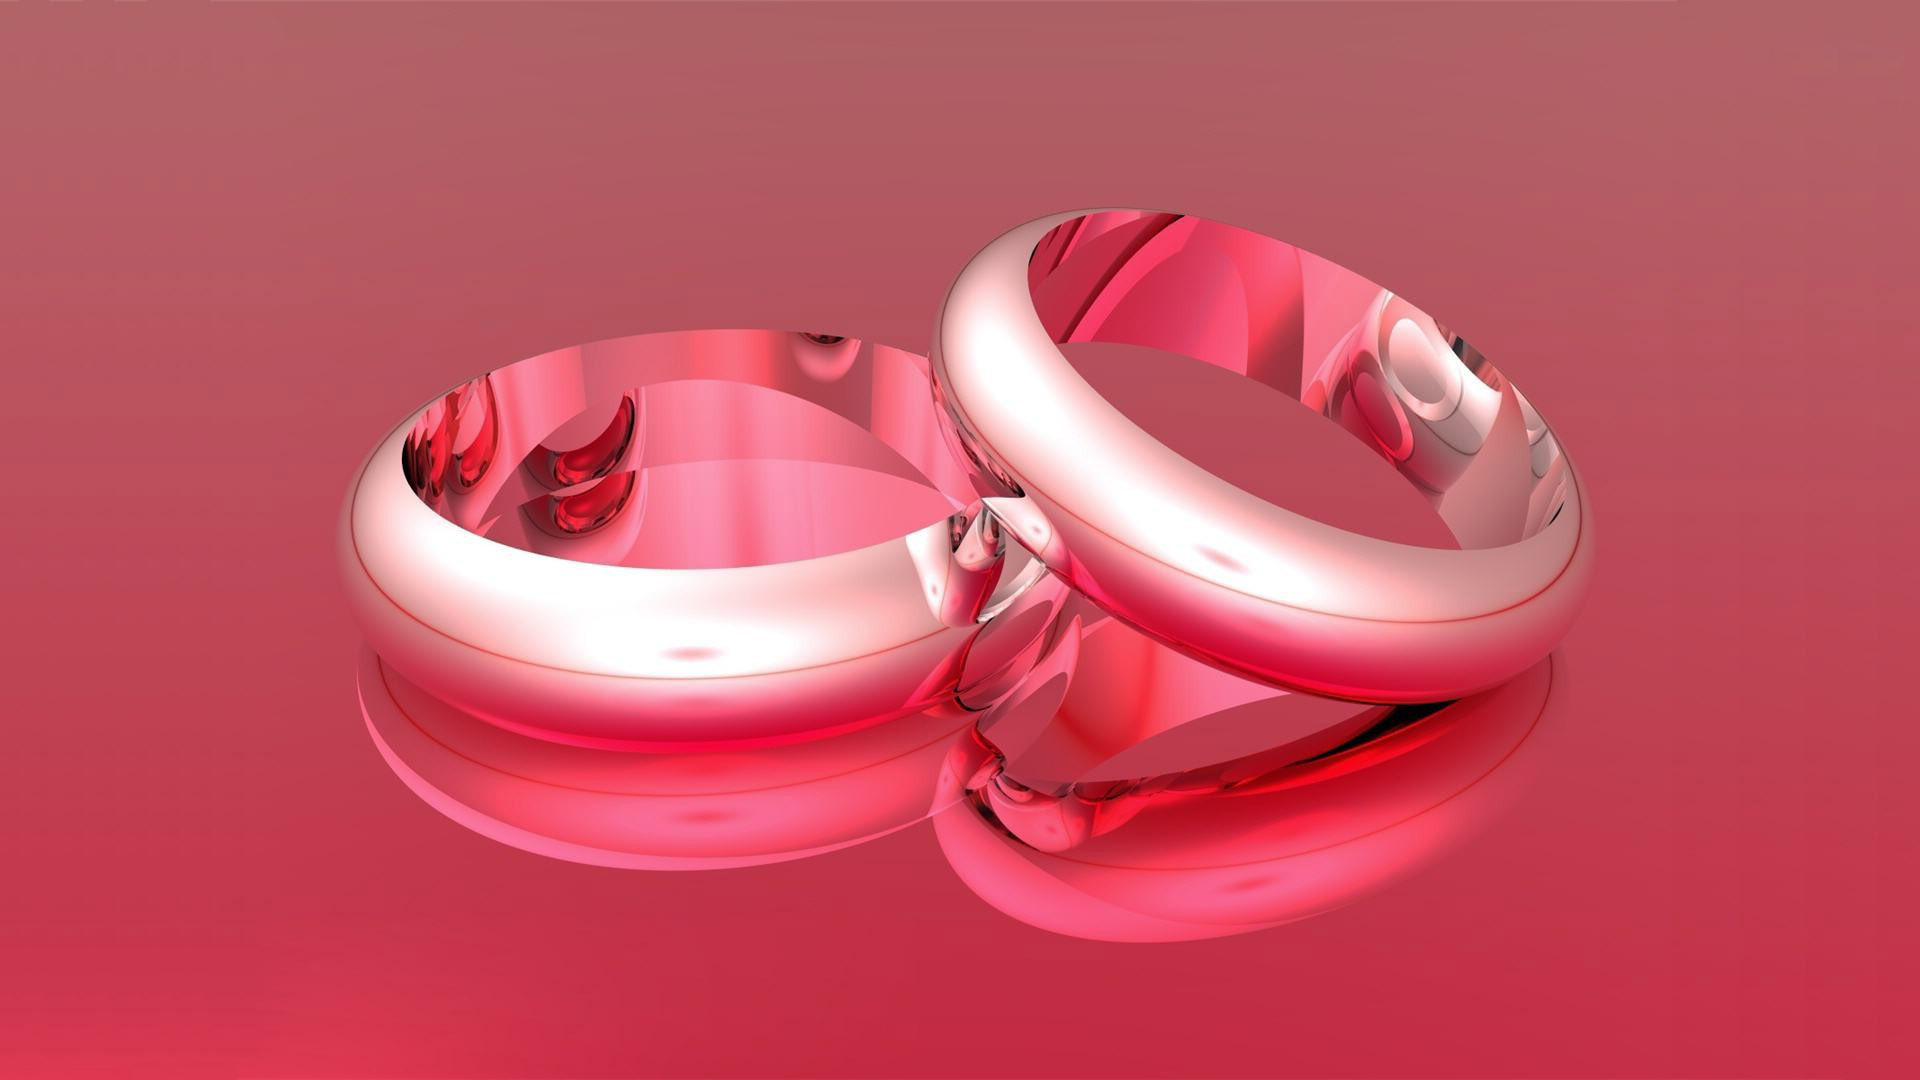 Ring Ceremony Hd Wallpaper Wedding Rings Full Hd Wallpaper And Background Image